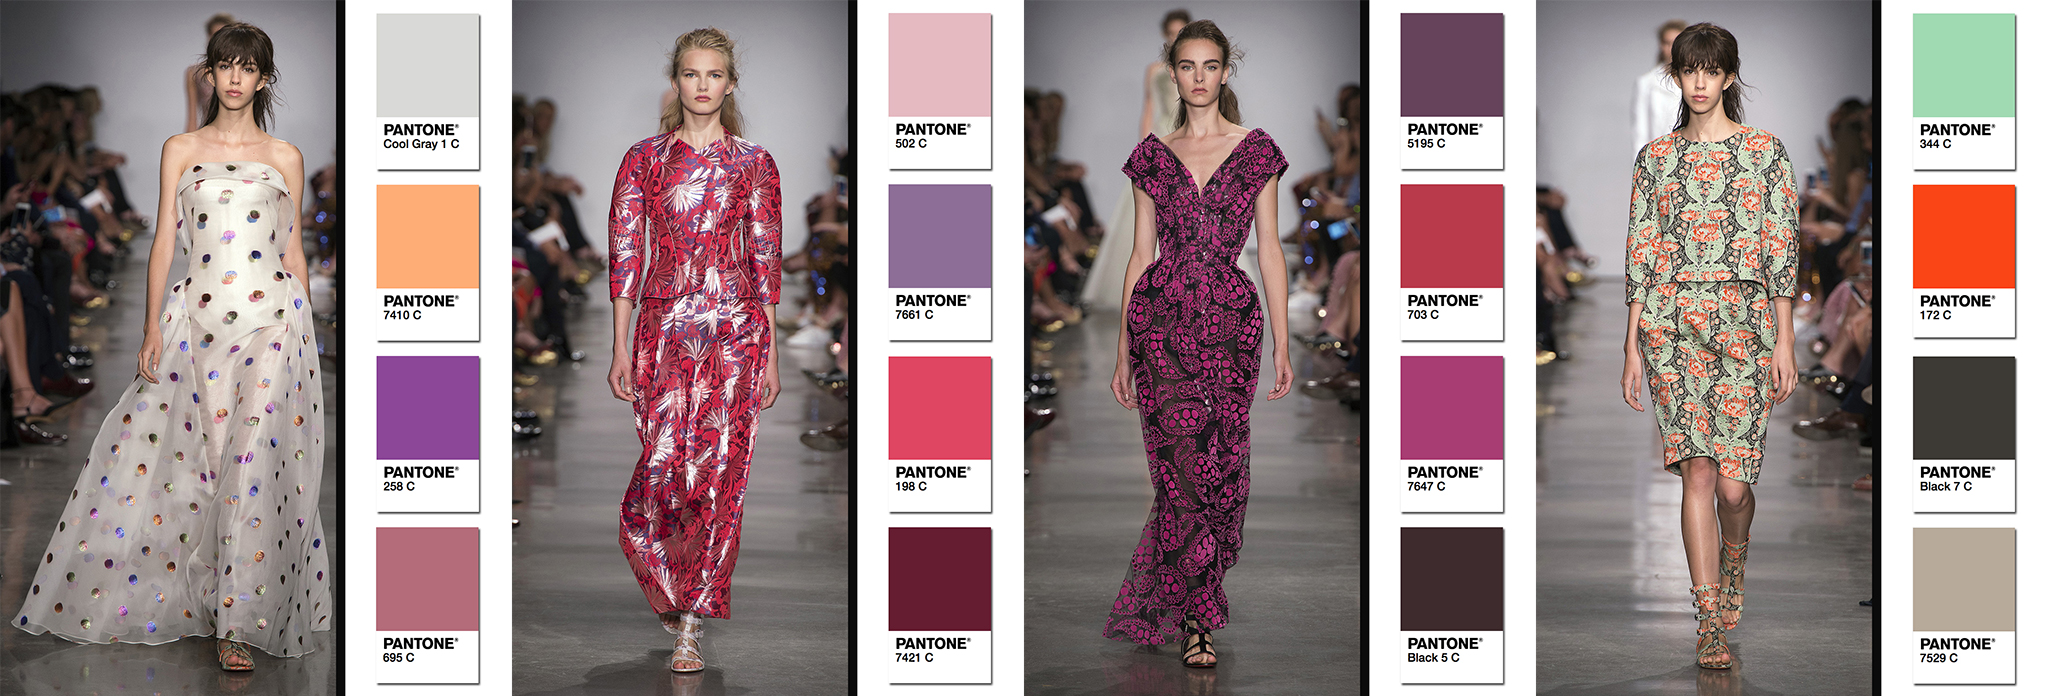 zac-posen-ss17-collection-color-codes-feat